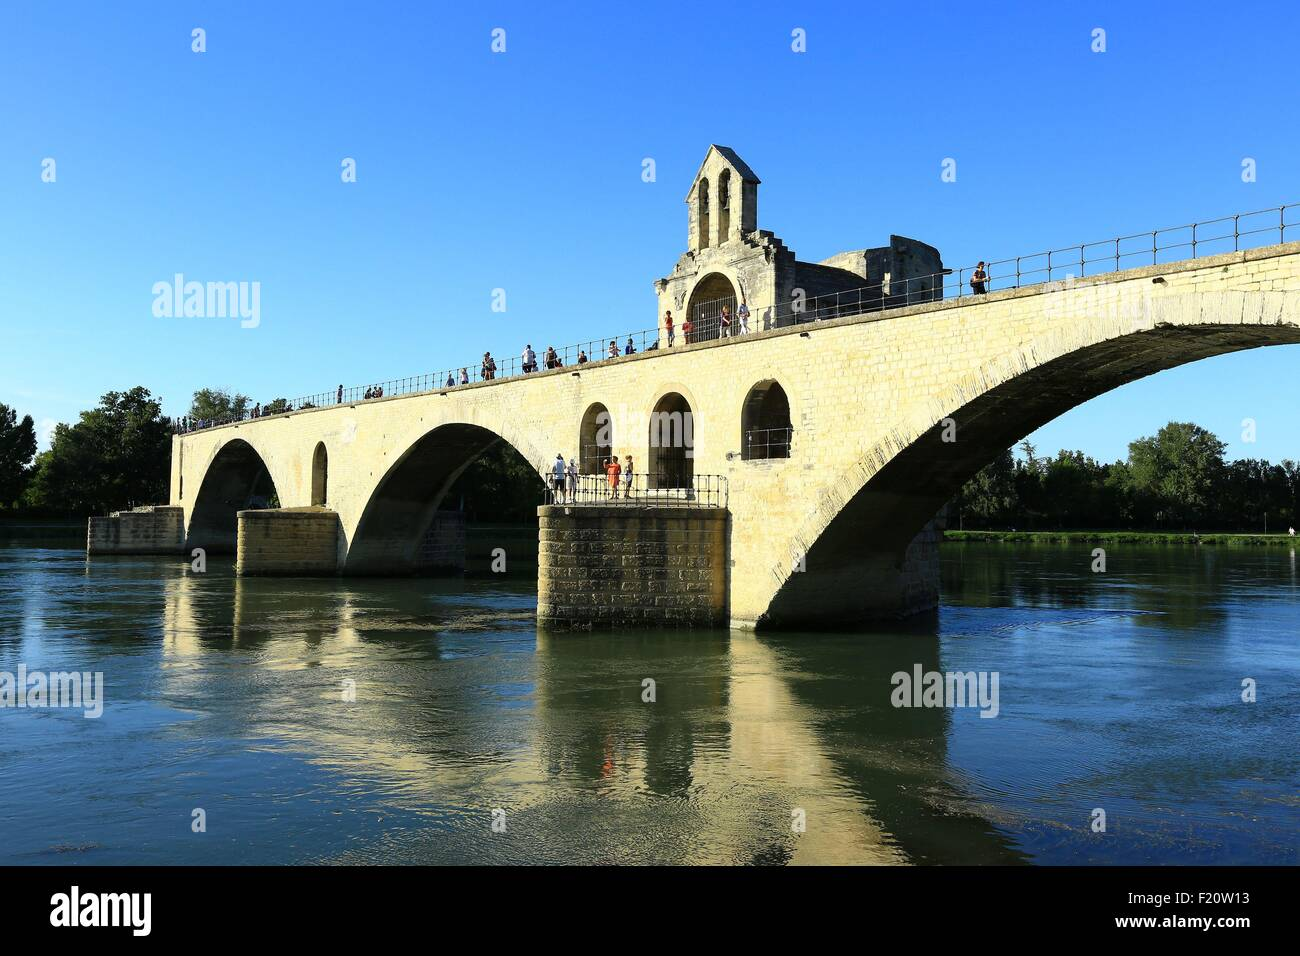 France, Vaucluse, Avignon, Saint Benezet Bridge (12th century) on the Rhone, listed as World Heritage by UNESCO - Stock Image